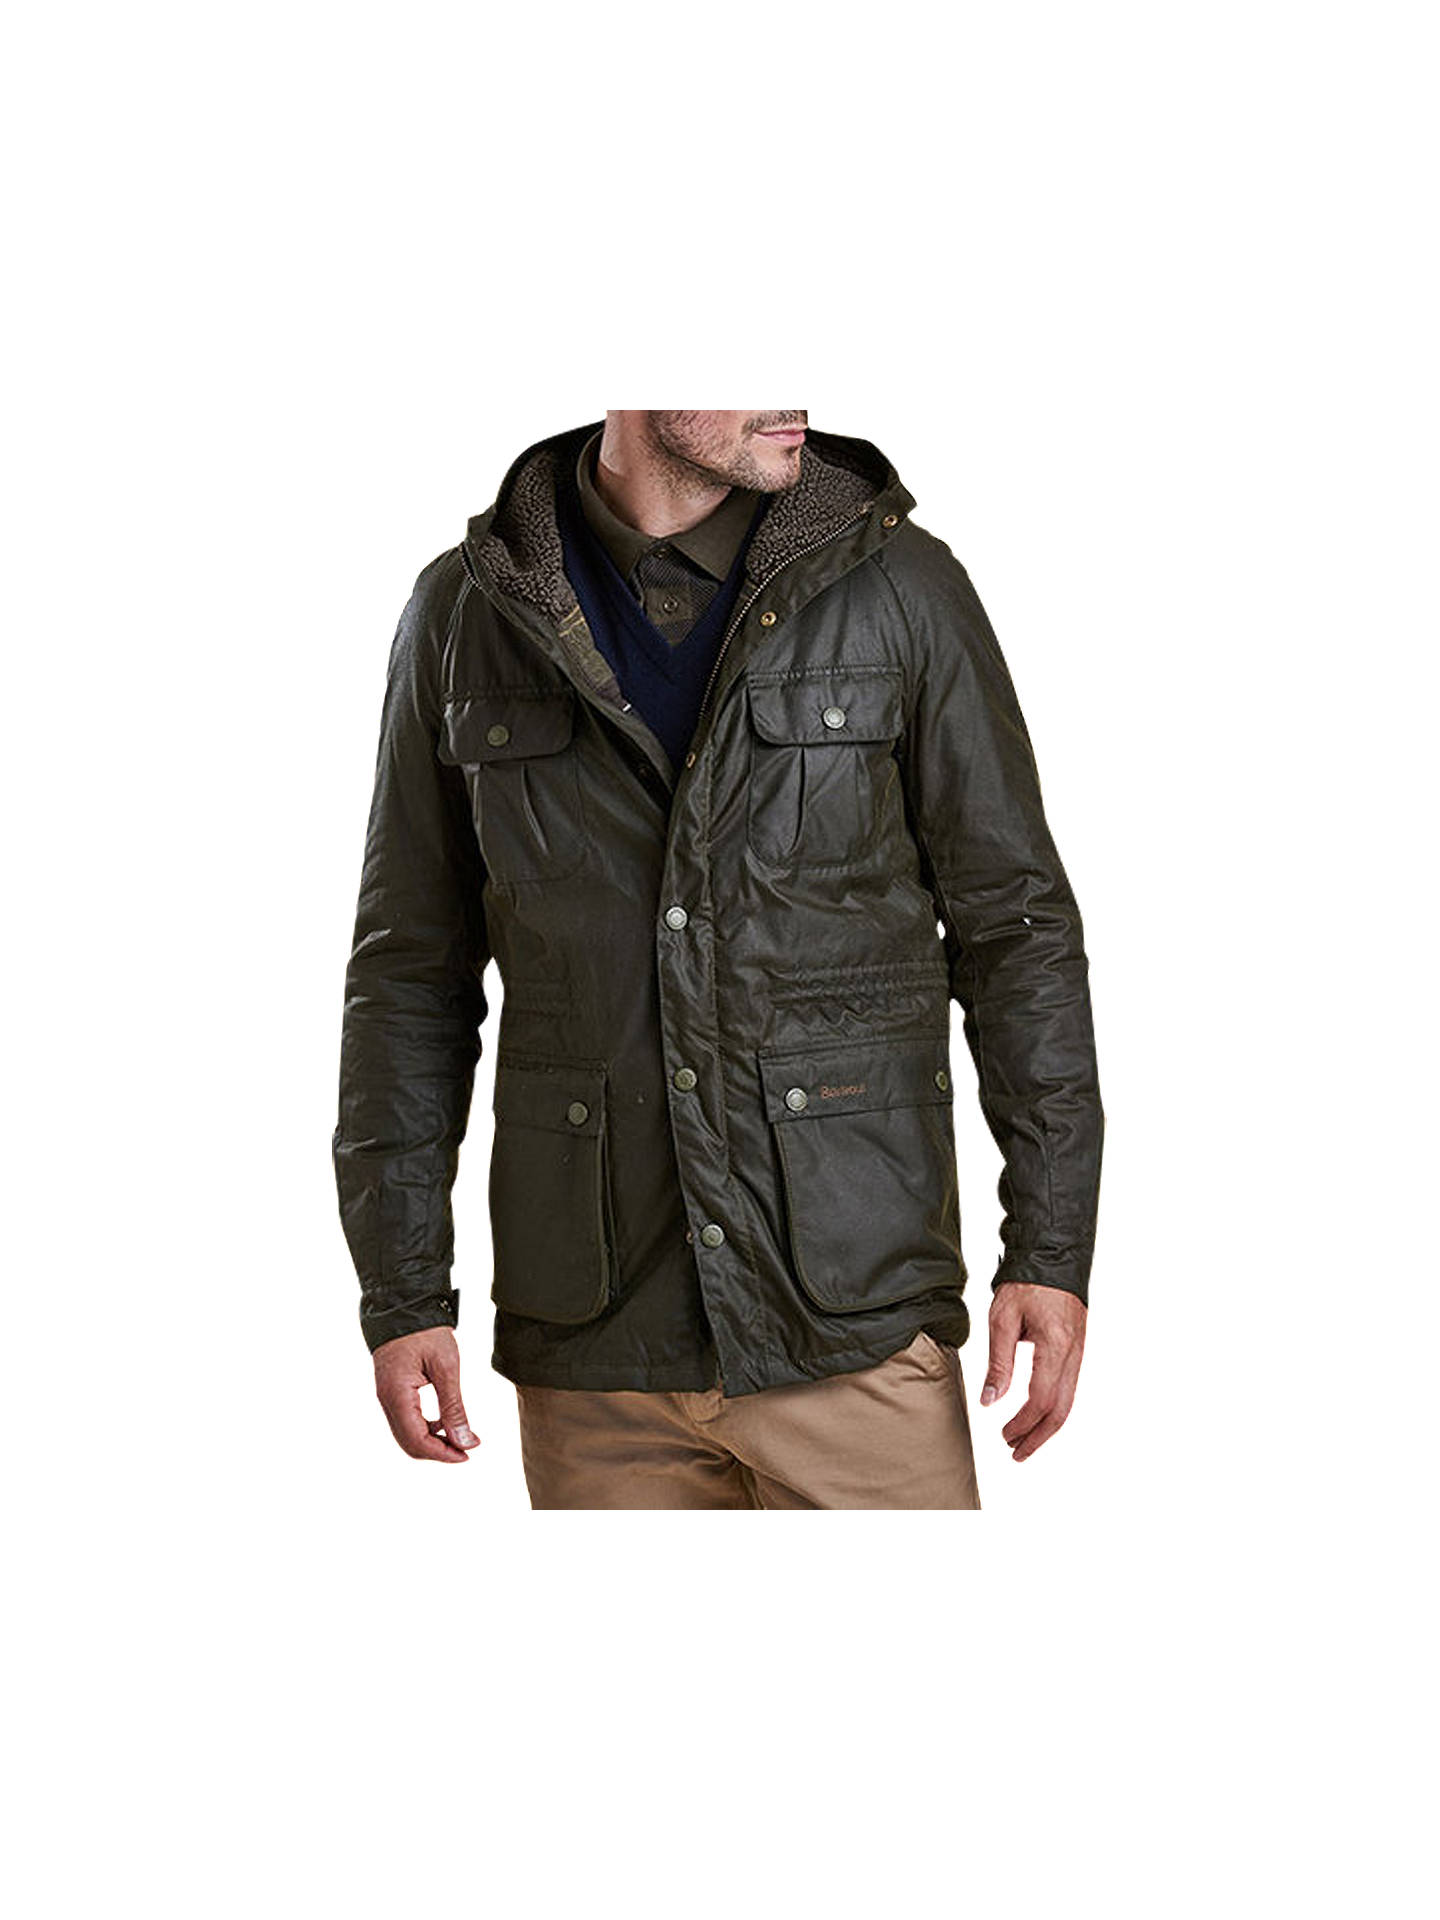 BuyBarbour Brindle Wax Jacket, Fern, S Online at johnlewis.com